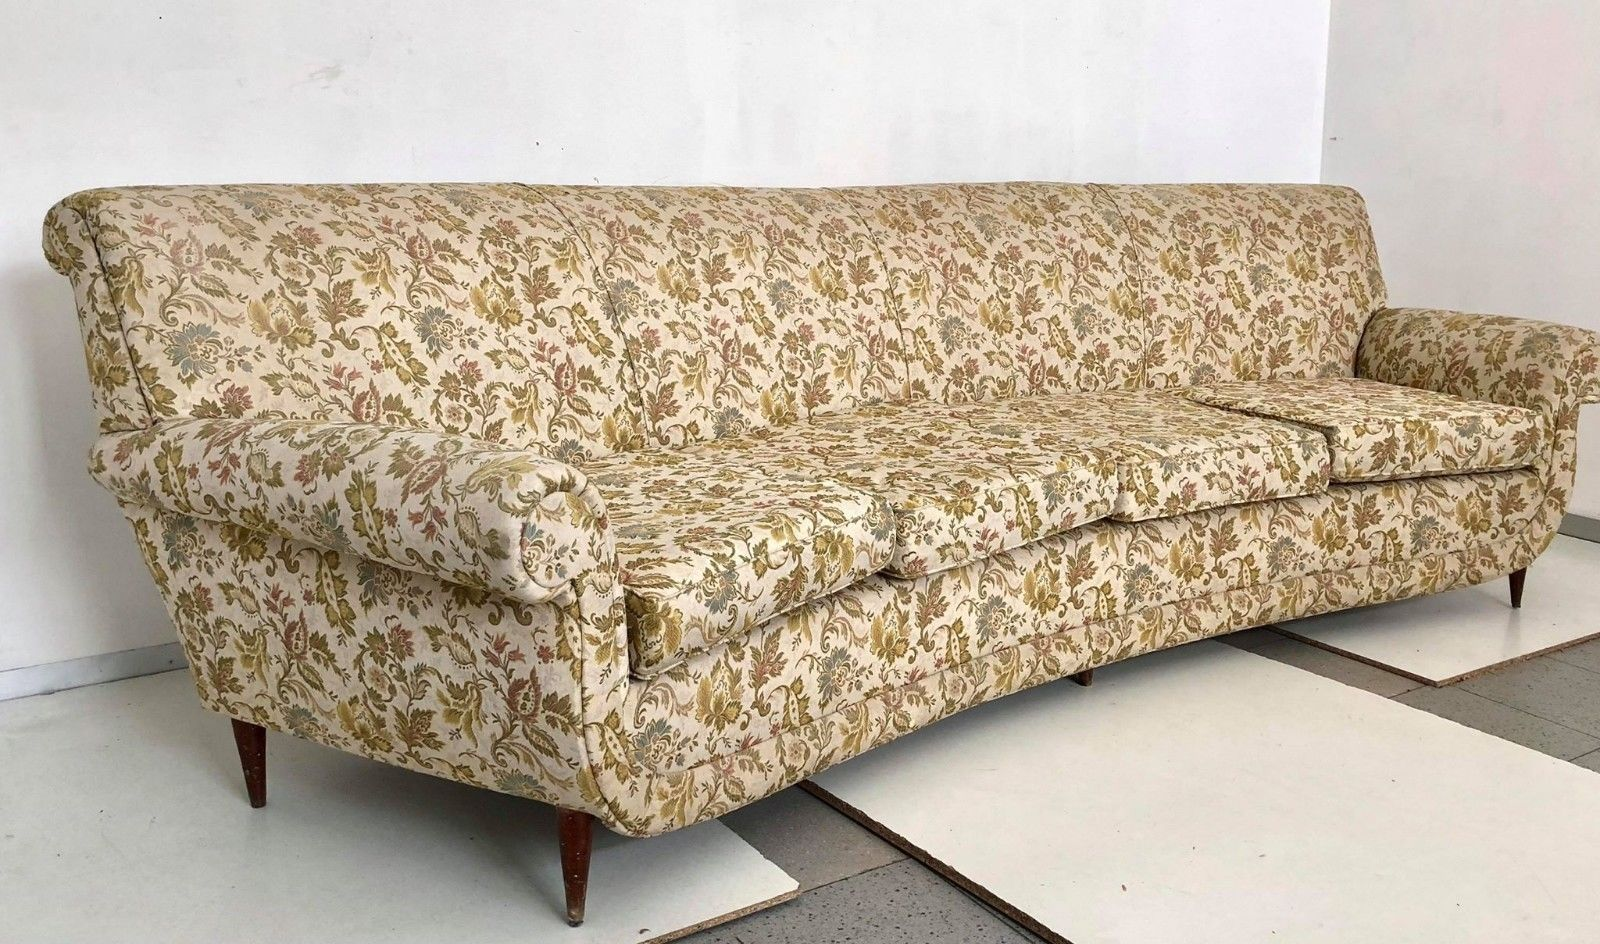 4 Seater Sofa Australia 4 Seater Curved Sofa 1950s For Sale At Pamono